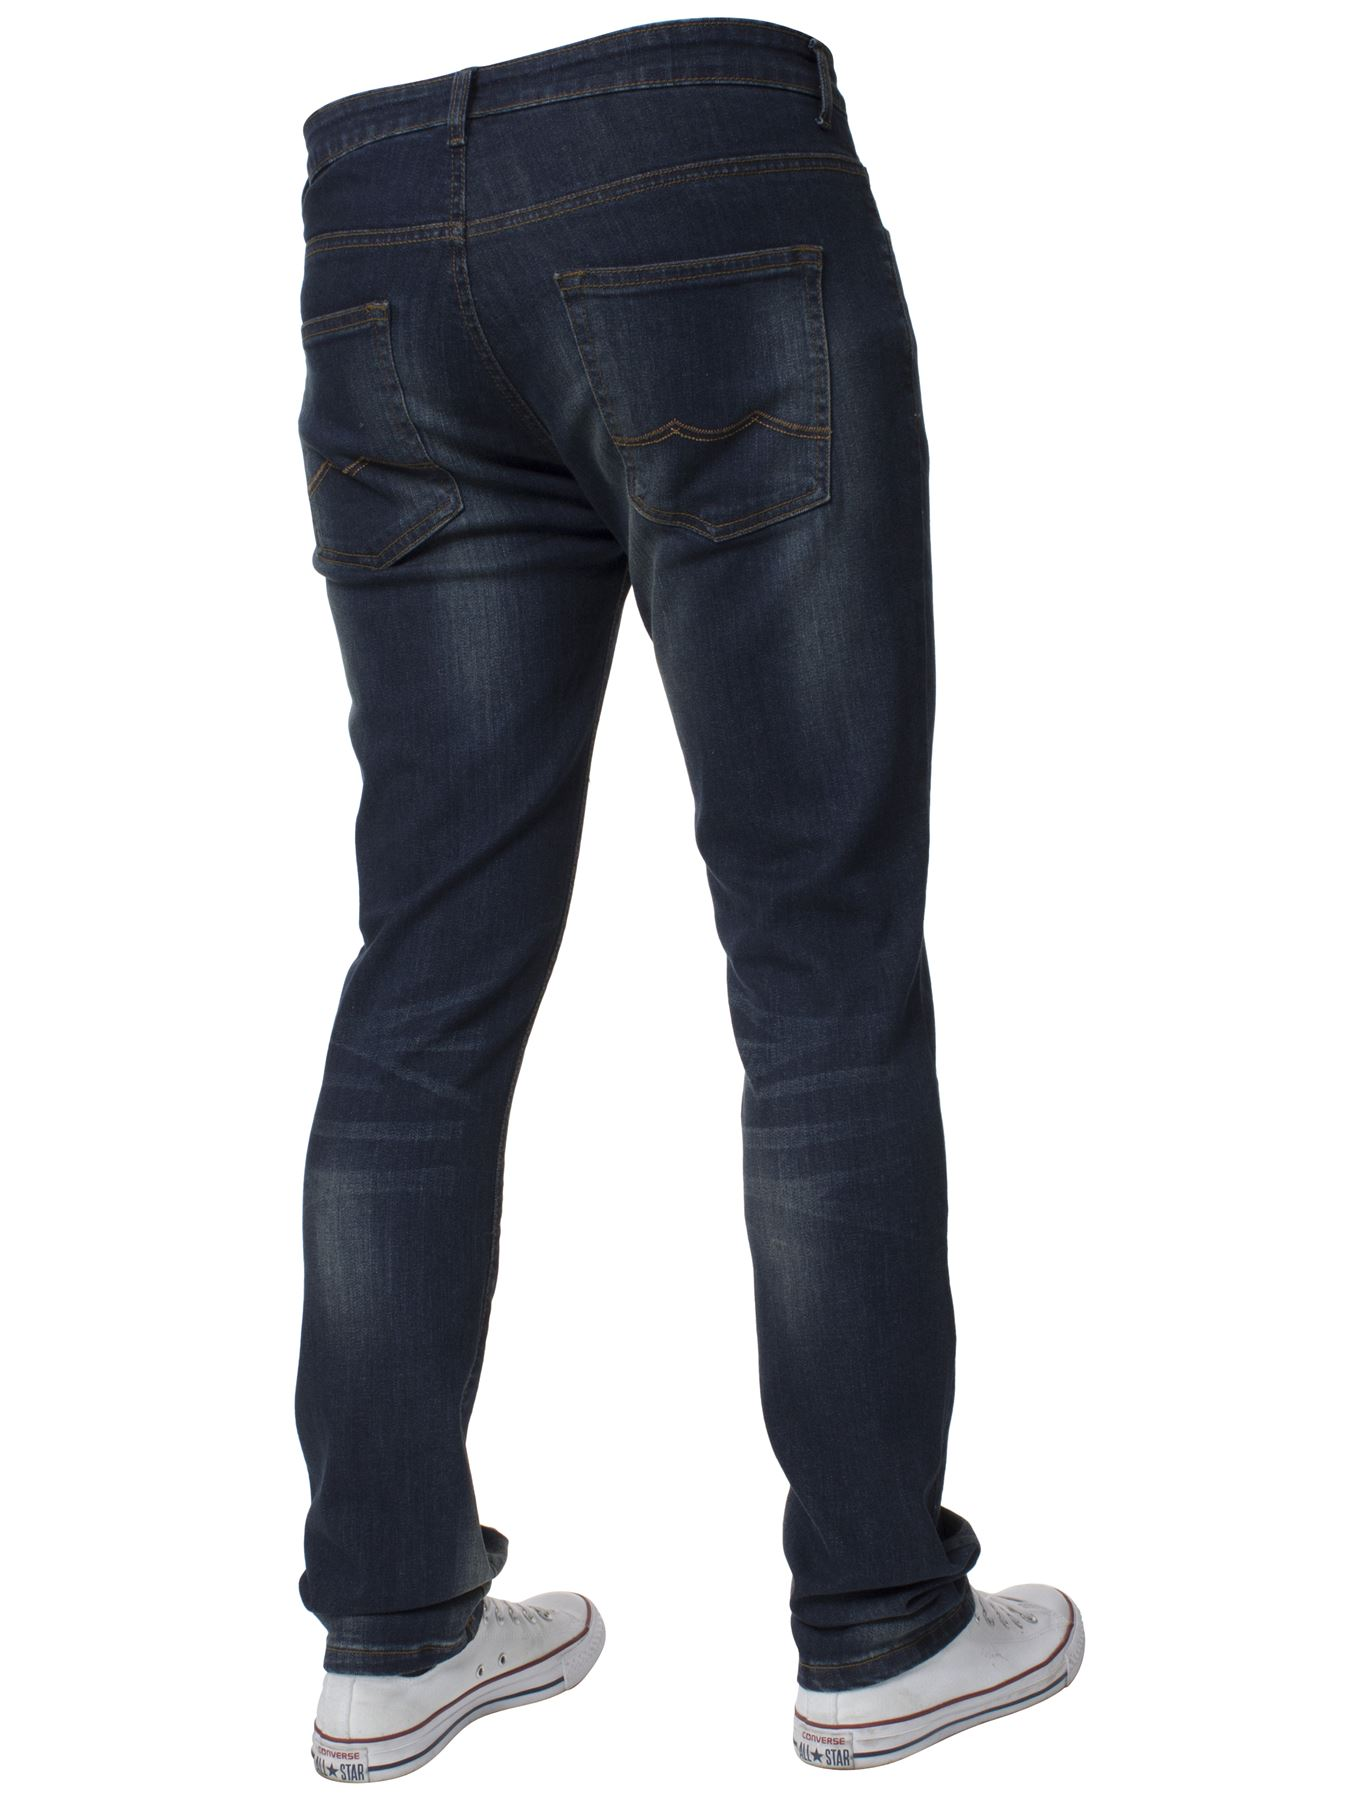 Kruze-Mens-Skinny-Stretch-Flex-Denim-Jeans-Slim-Fit-Trouser-Pants-Big-King-Sizes thumbnail 17